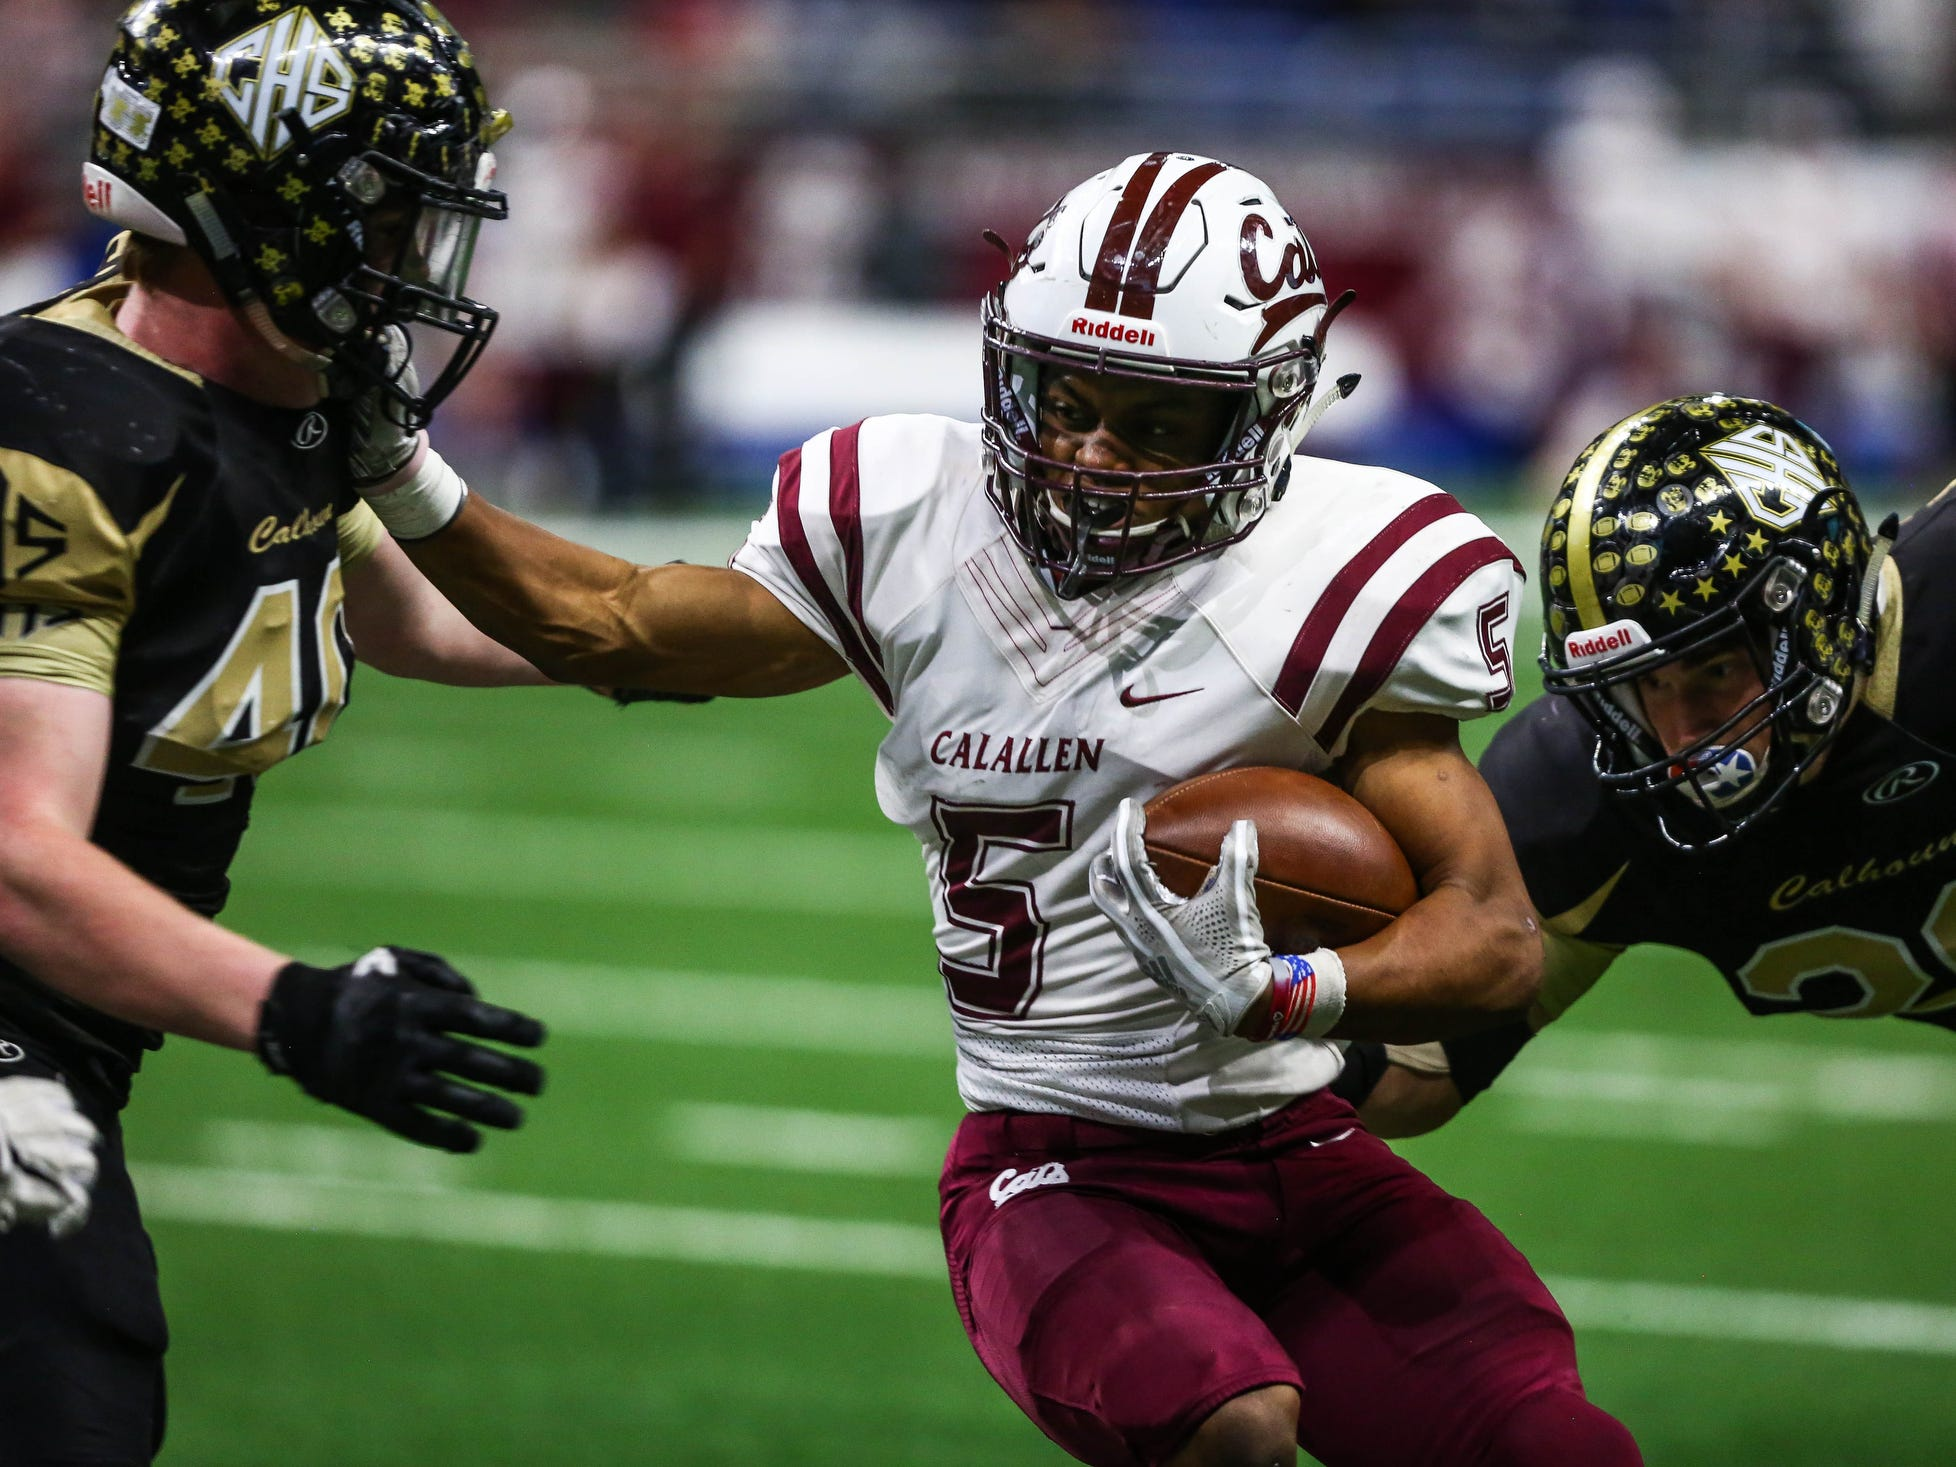 Calallen's Shenan Price tries to outrun Calhoun's defense during Friday's game at the Alamodome.